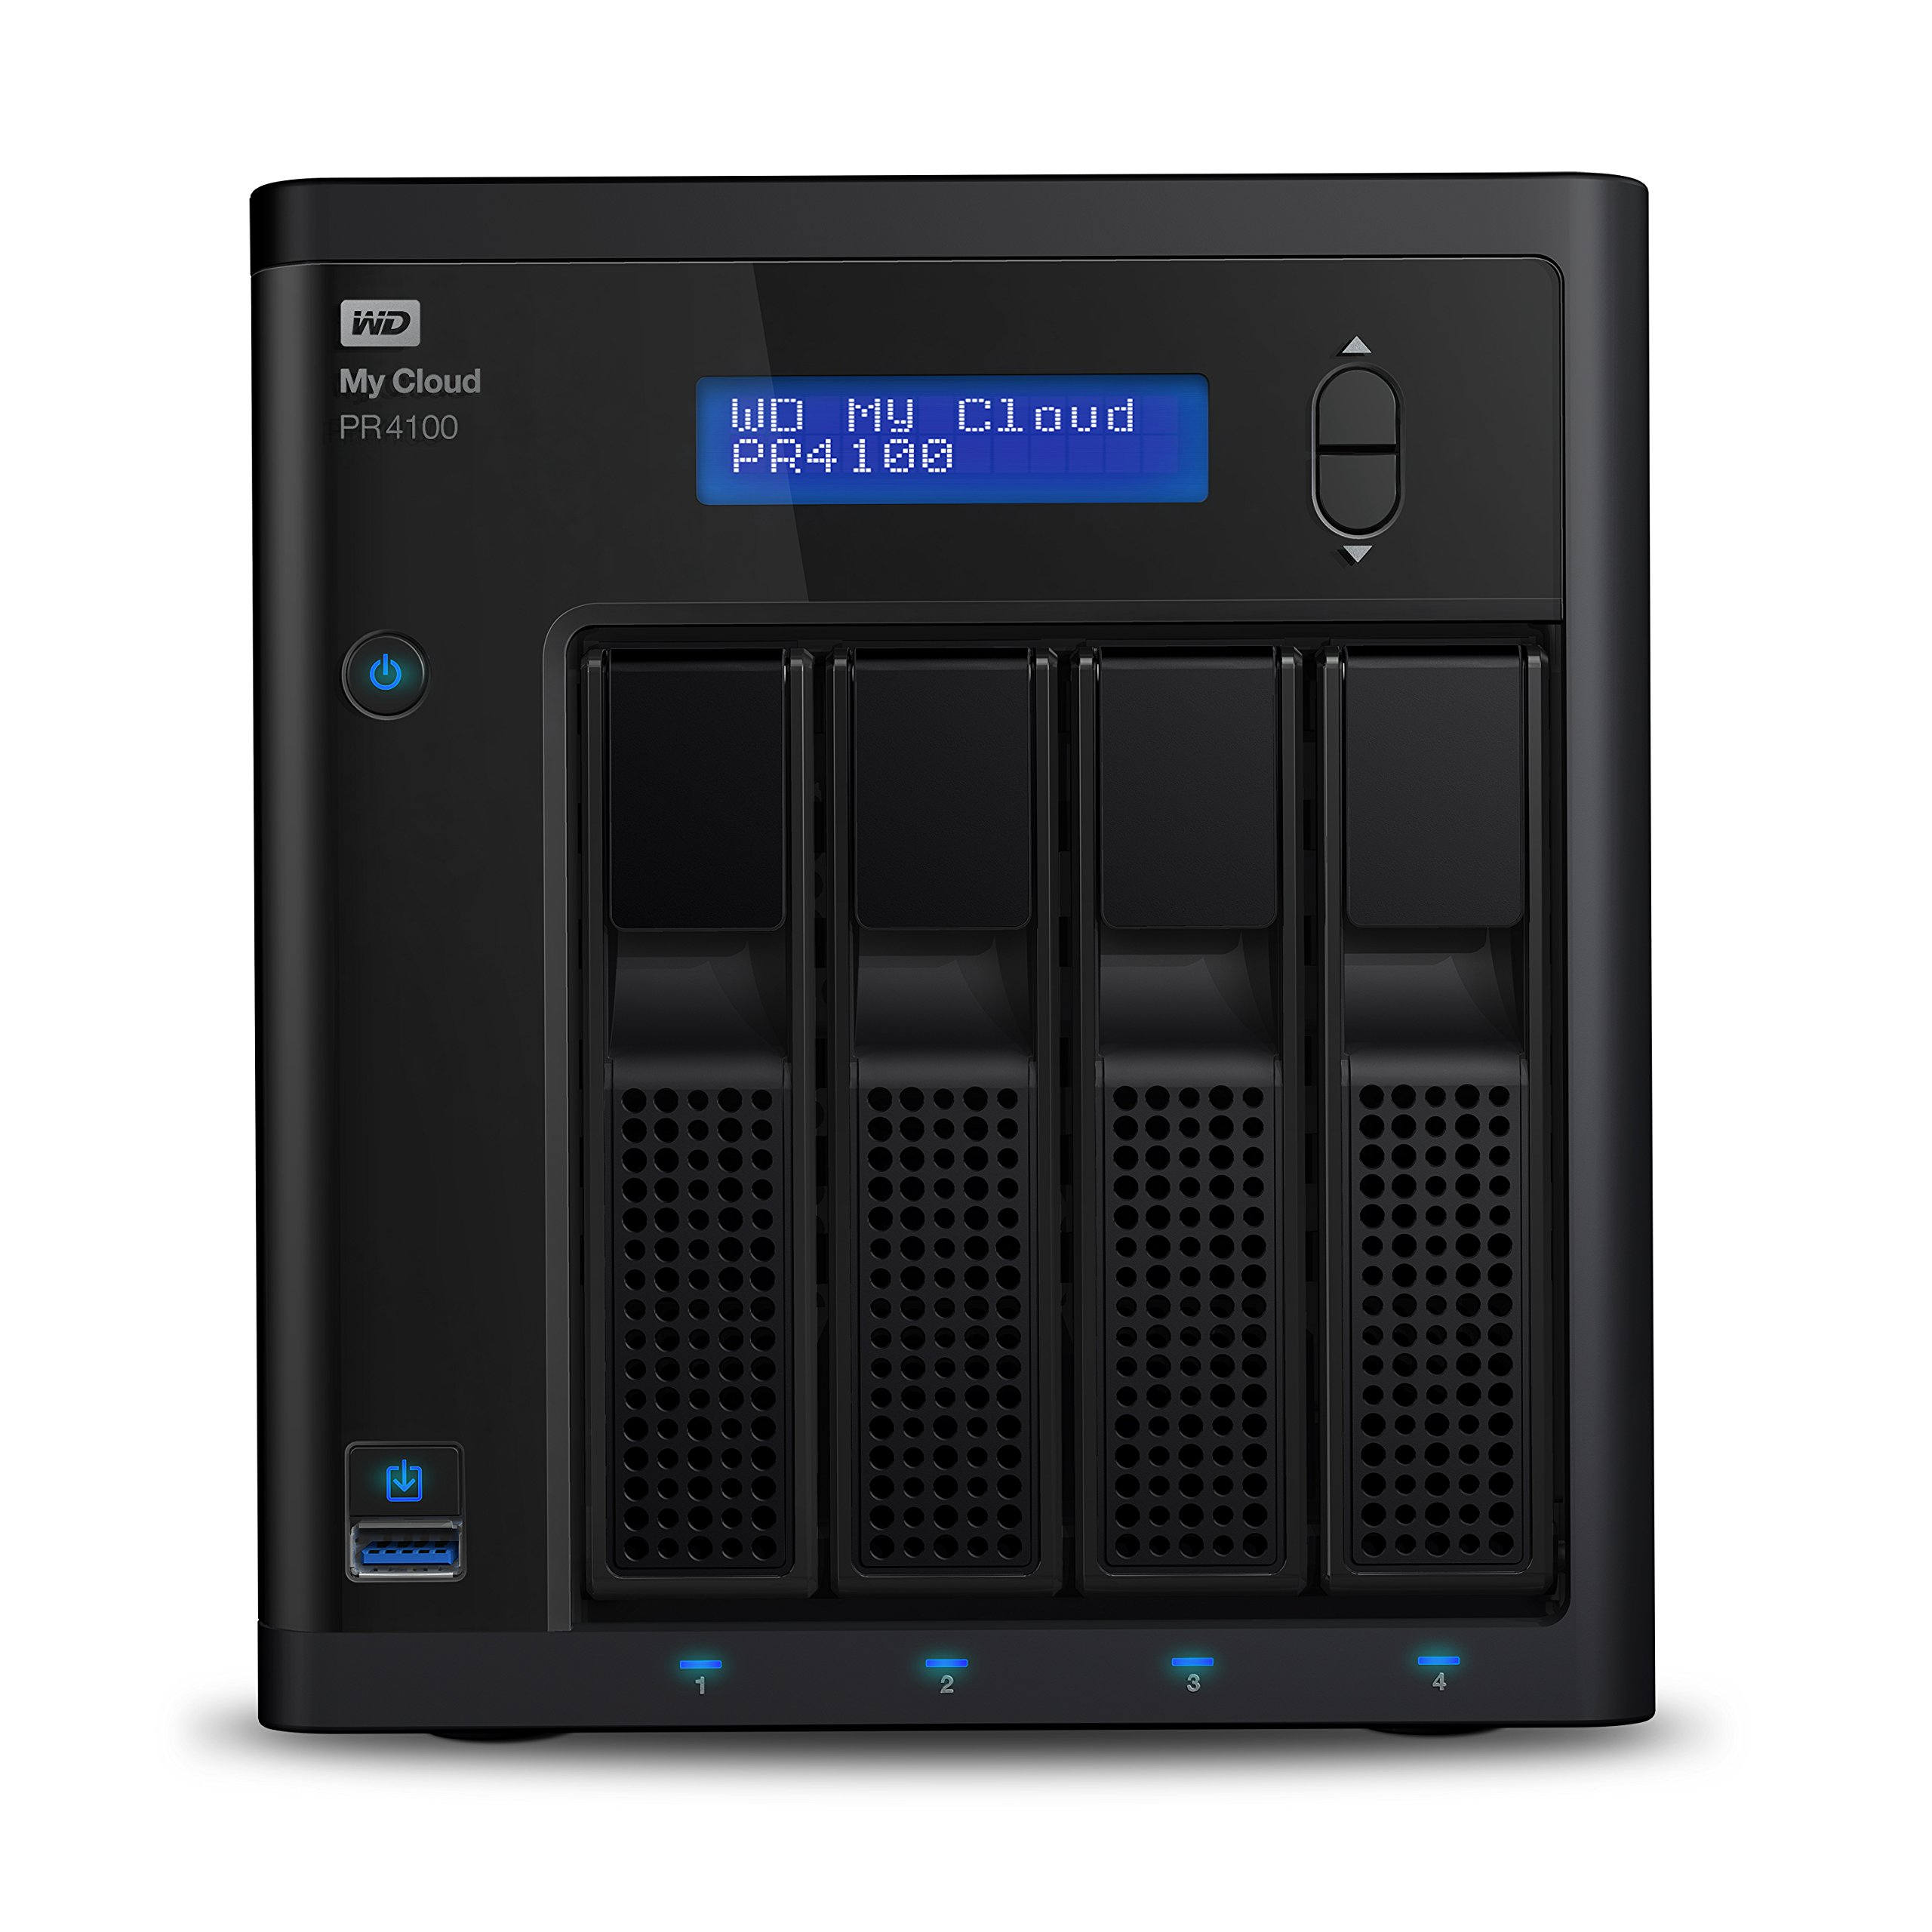 WD 32TB My Cloud Pro Series PR4100 Network Attached Storage - NAS - WDBNFA0320KBK-NESN